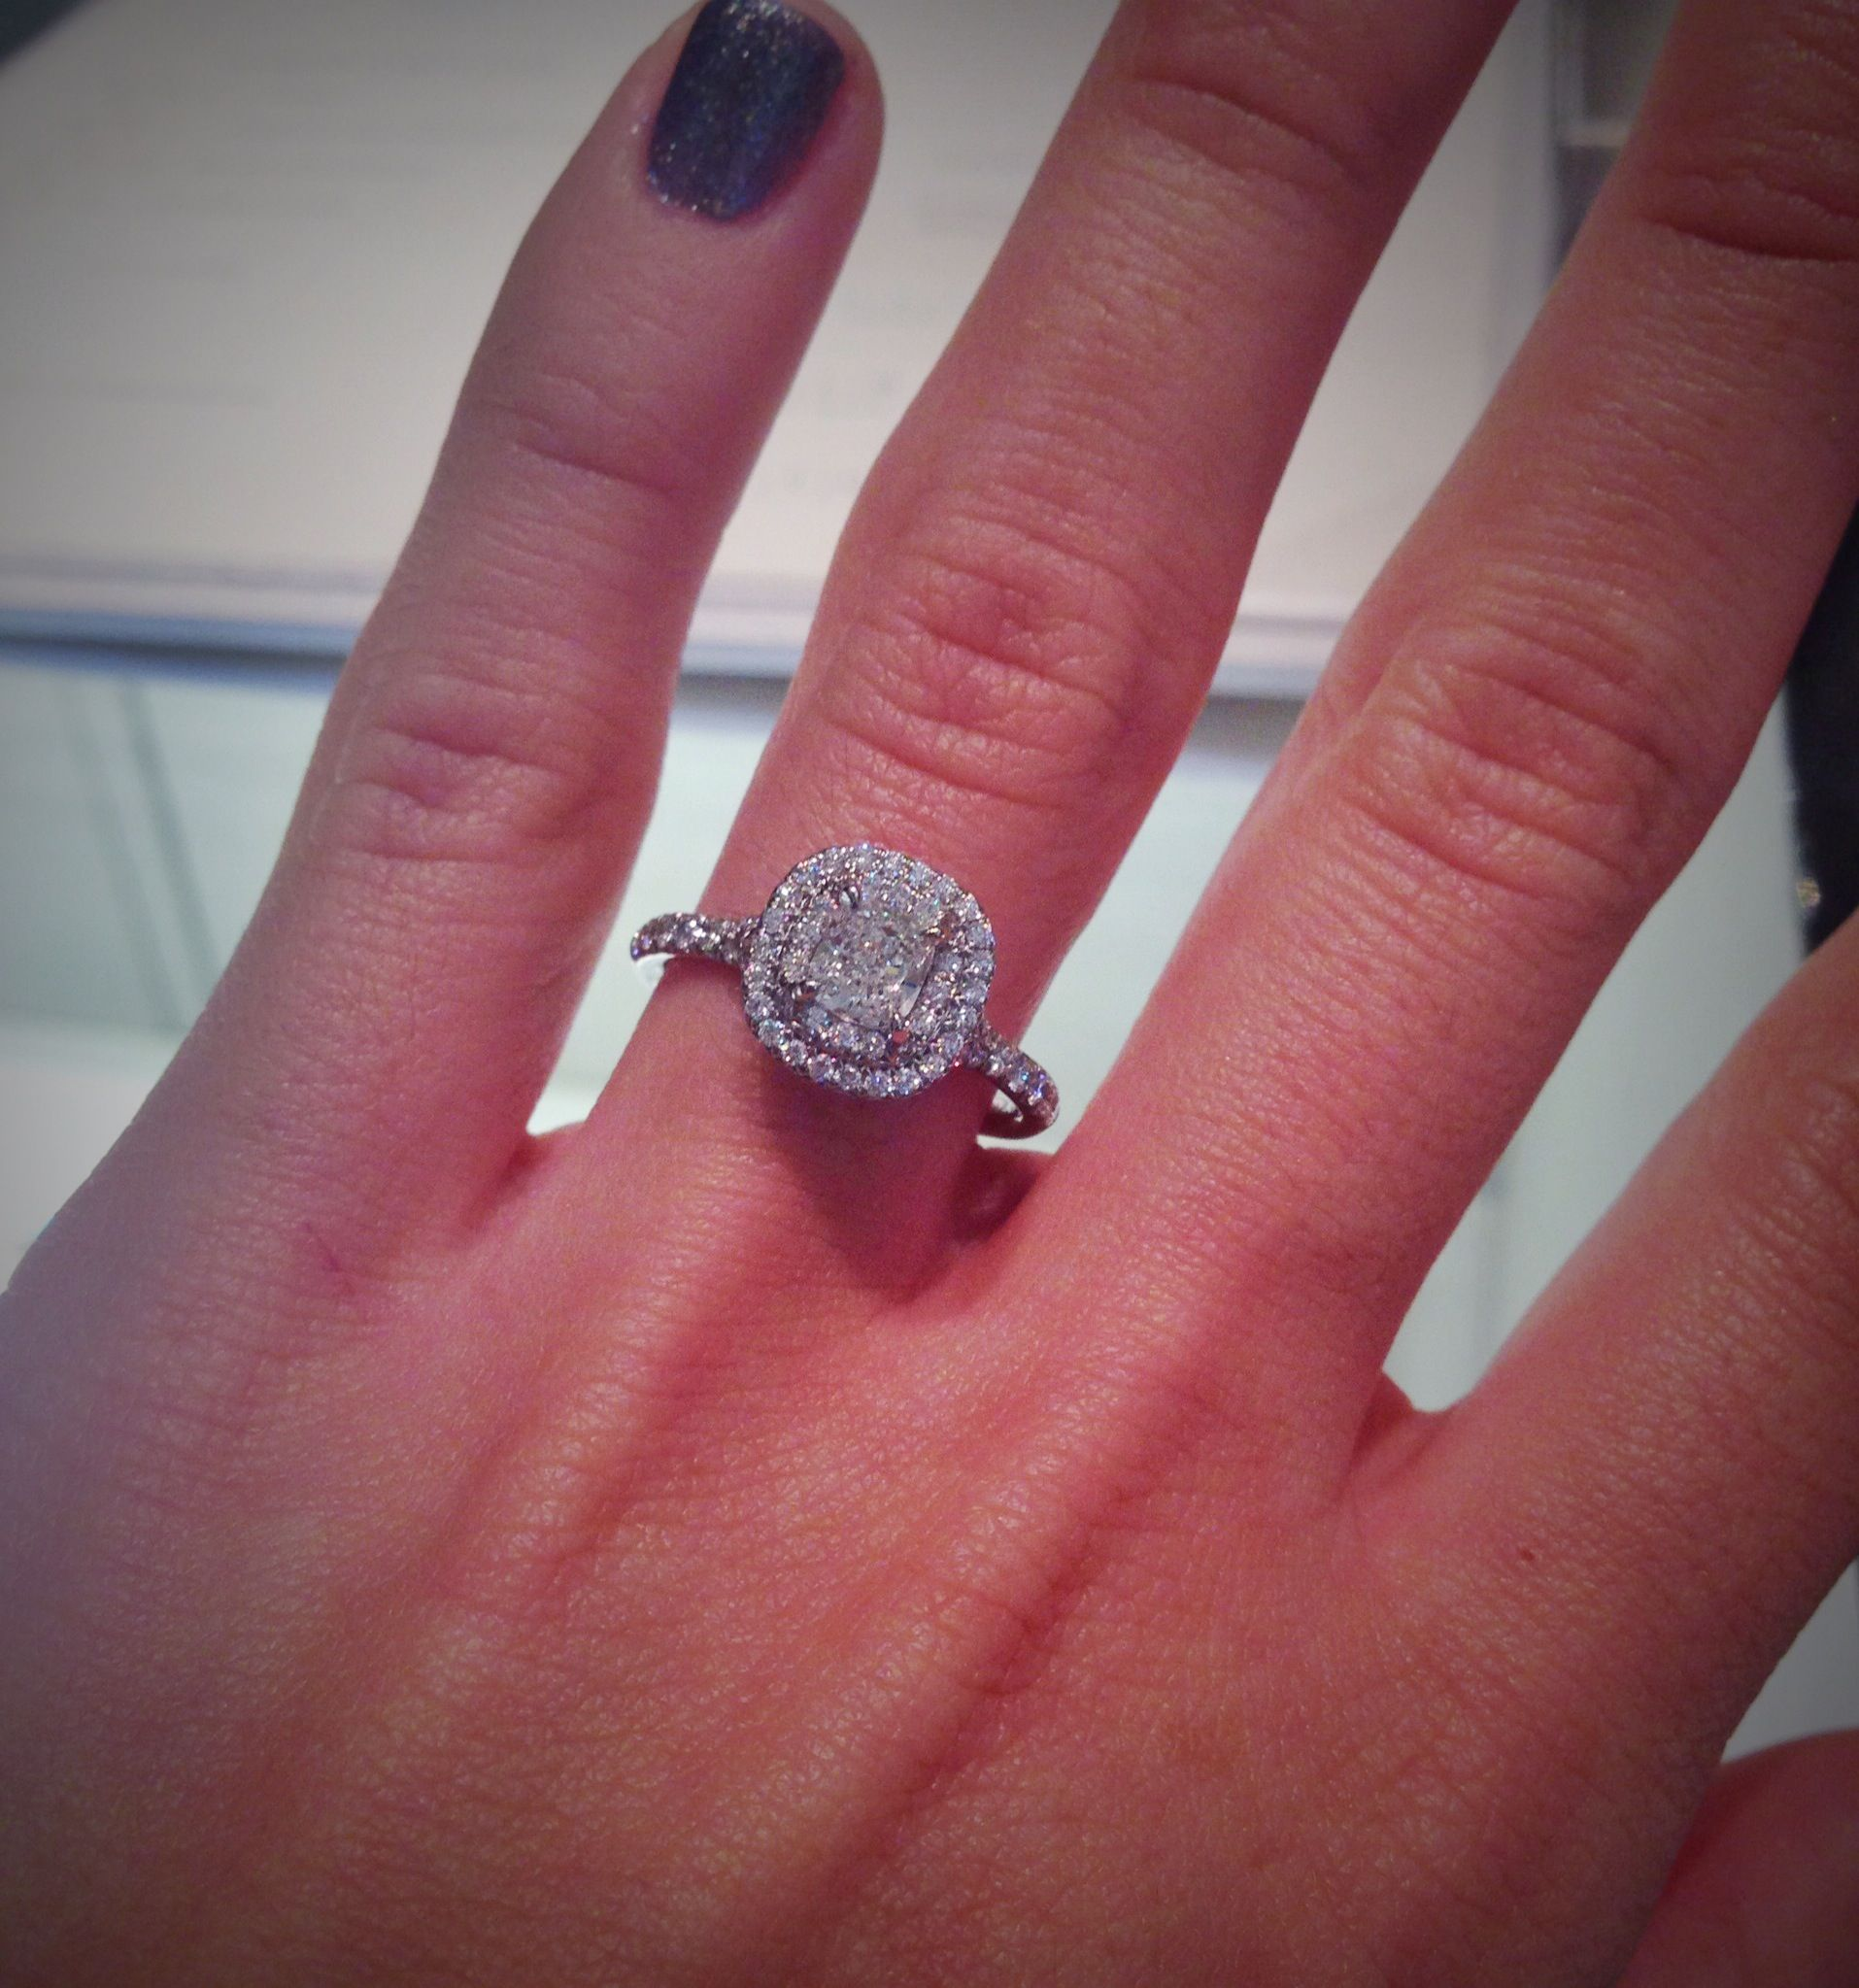 Tiffany s Engagement Ring DREAM RING Wedding Pinterest